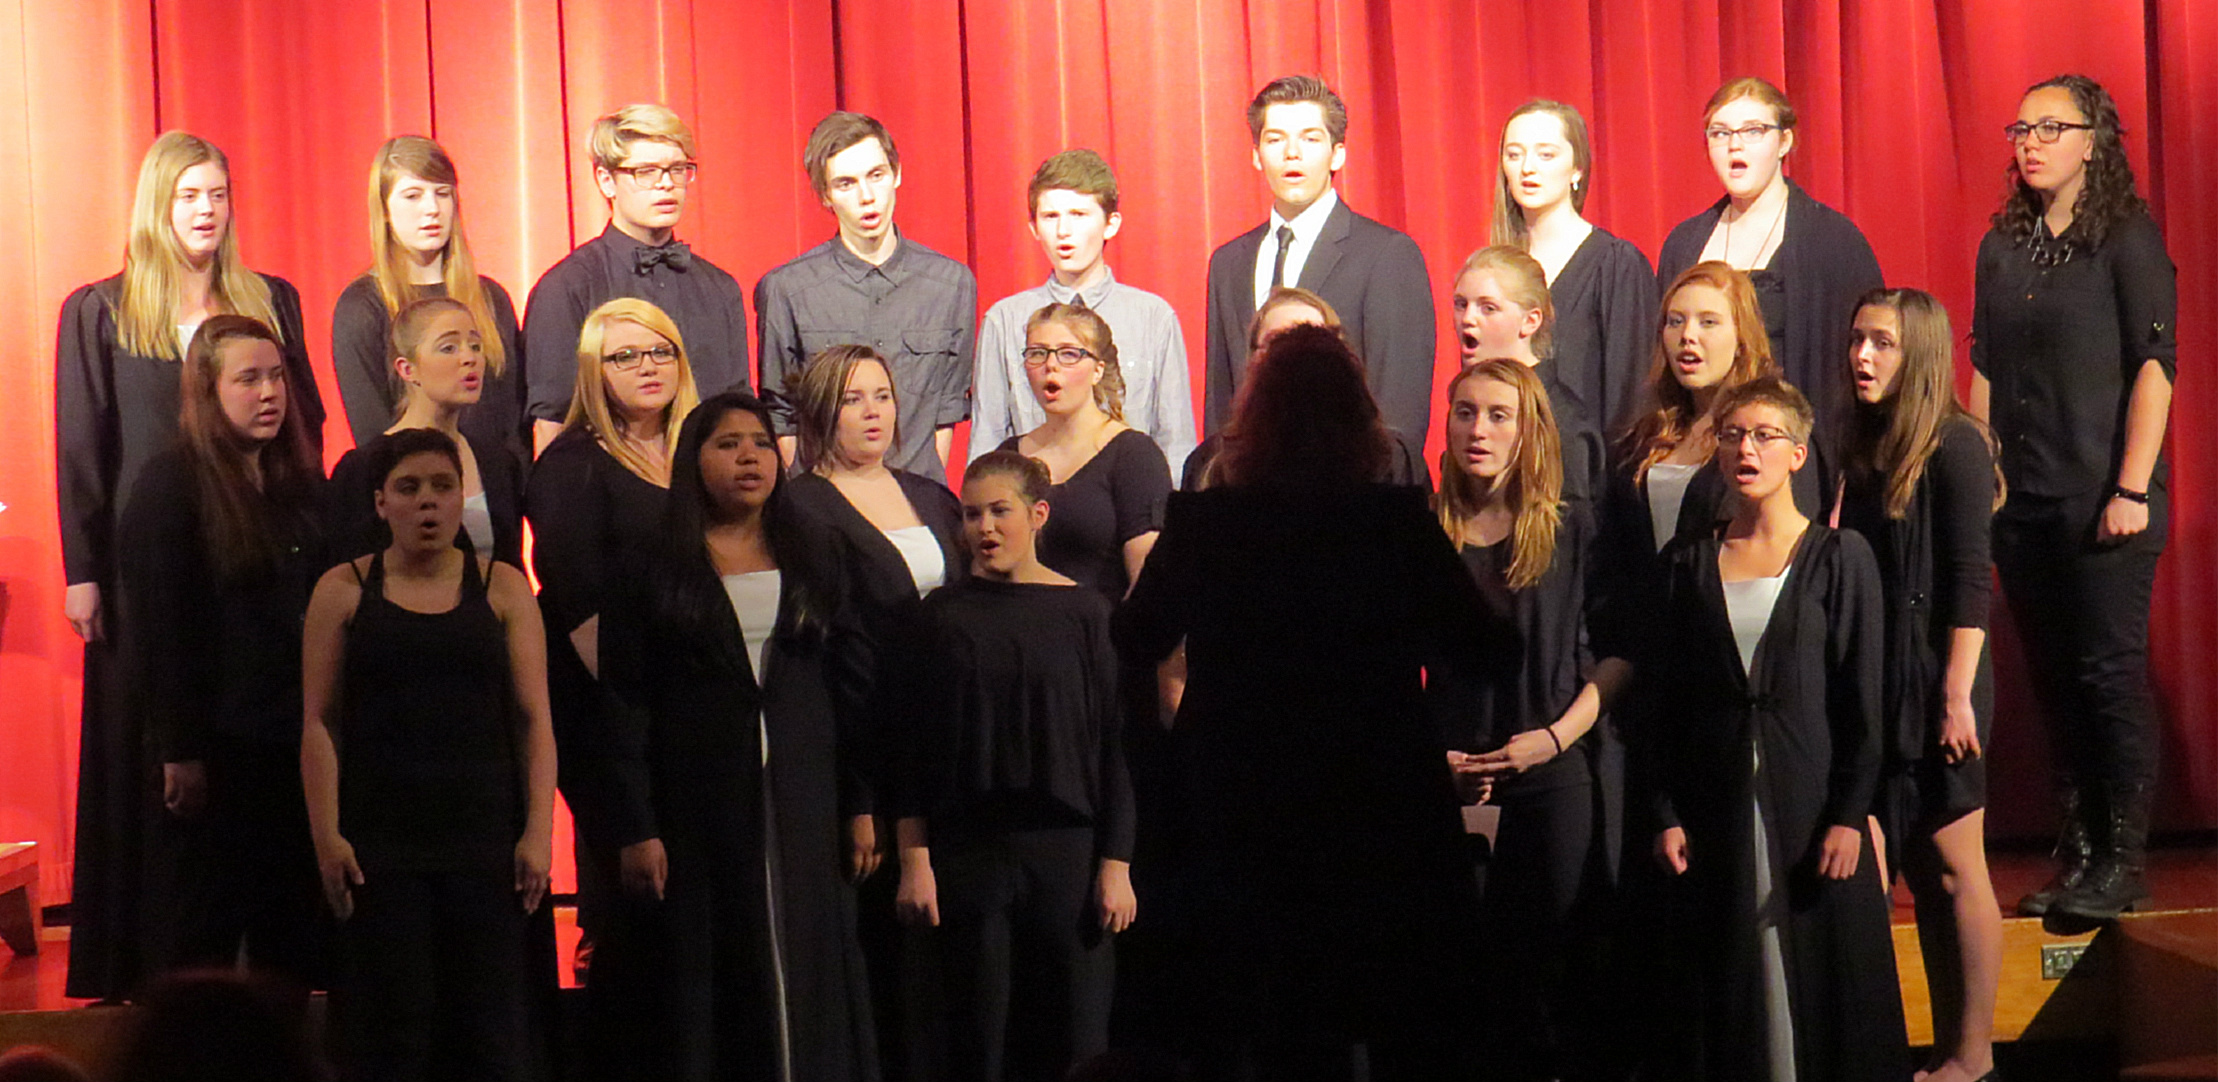 Fine Arts Choir at Laker High School